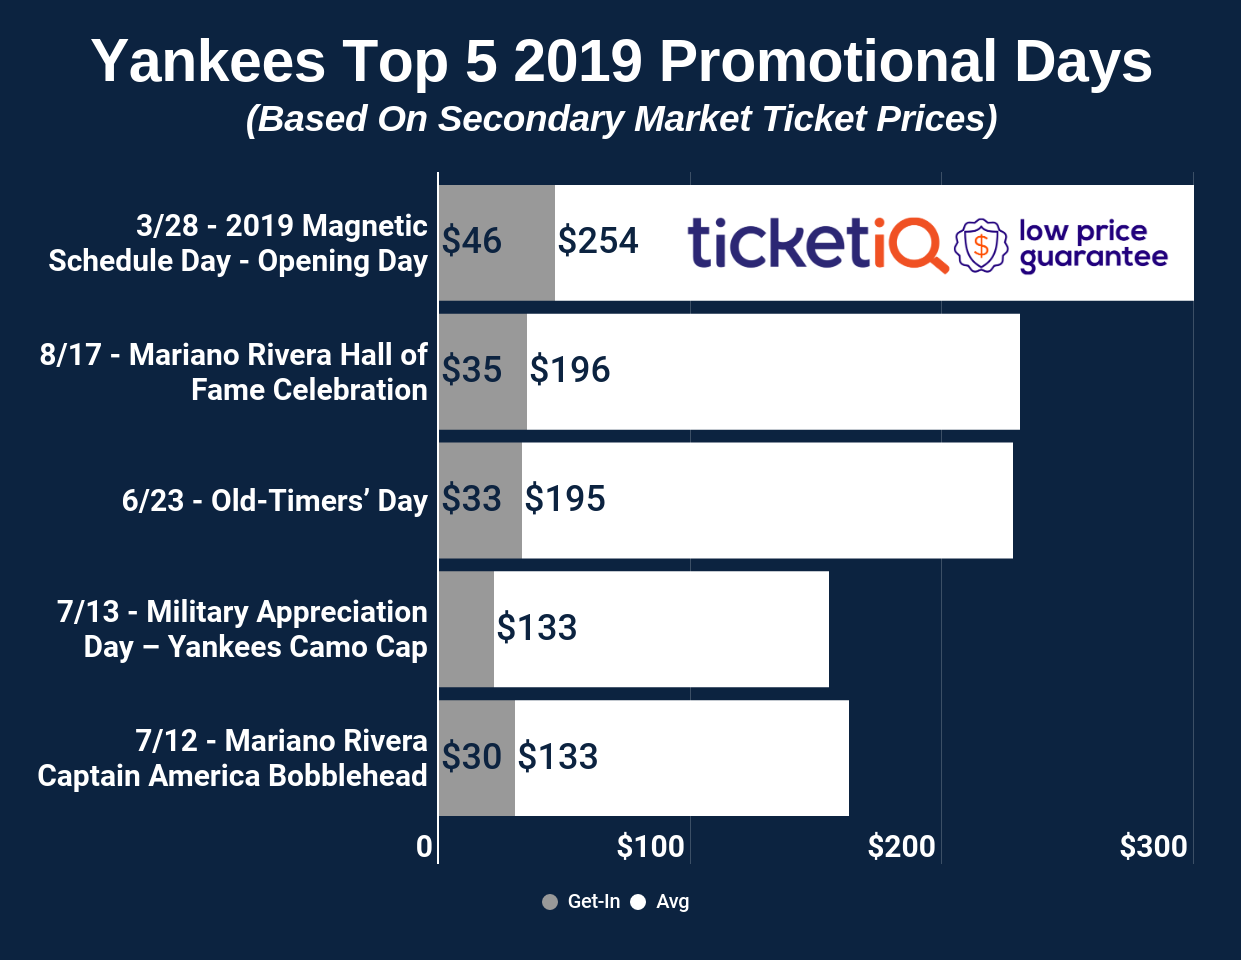 photo relating to Houston Astros Printable Schedule identified as 2019 Fresh new York Yankees Marketing Giveaway Program